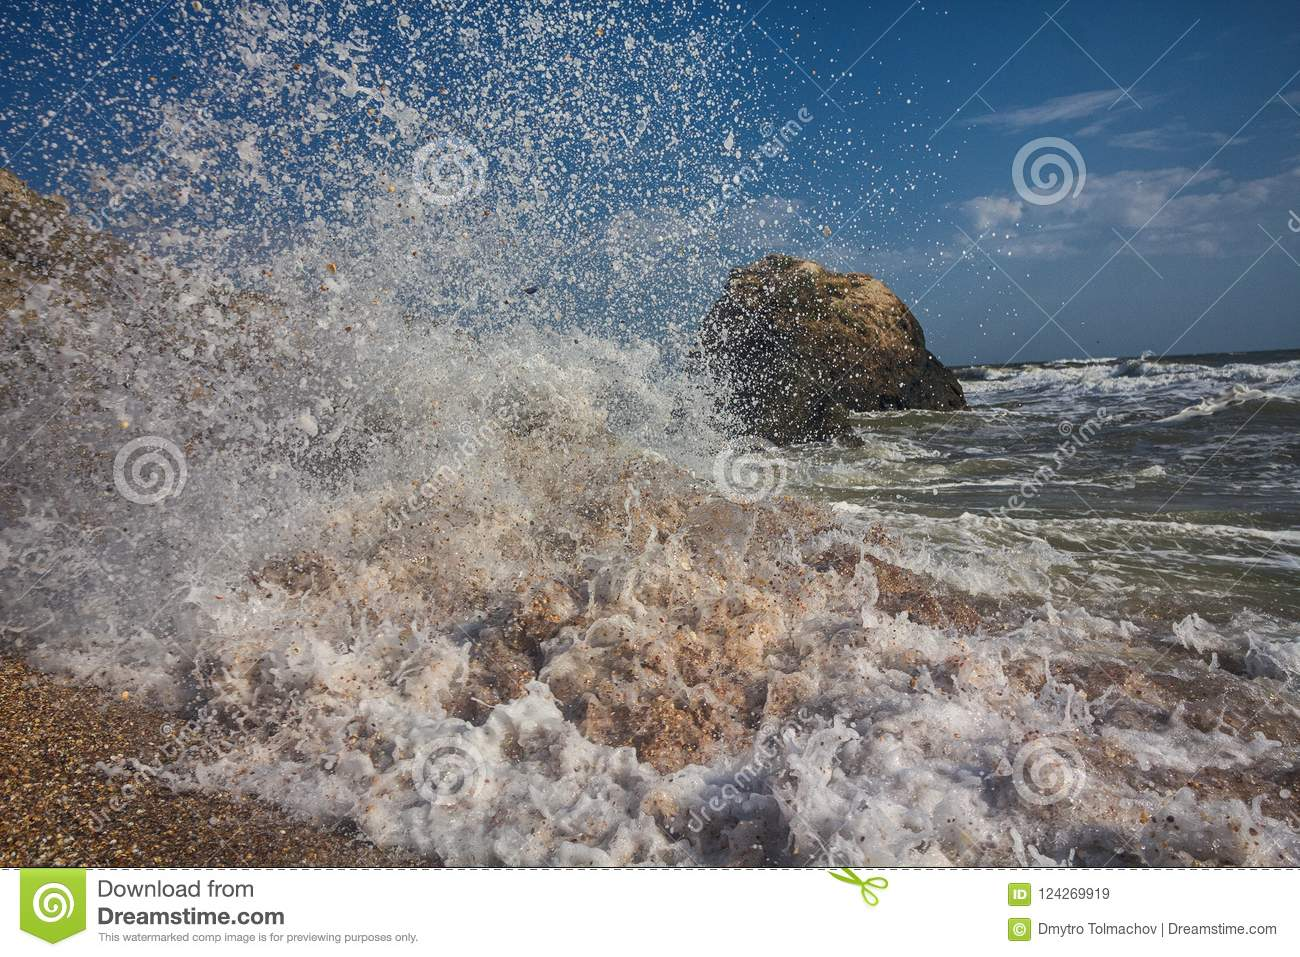 Splashes of waves beating against the shore